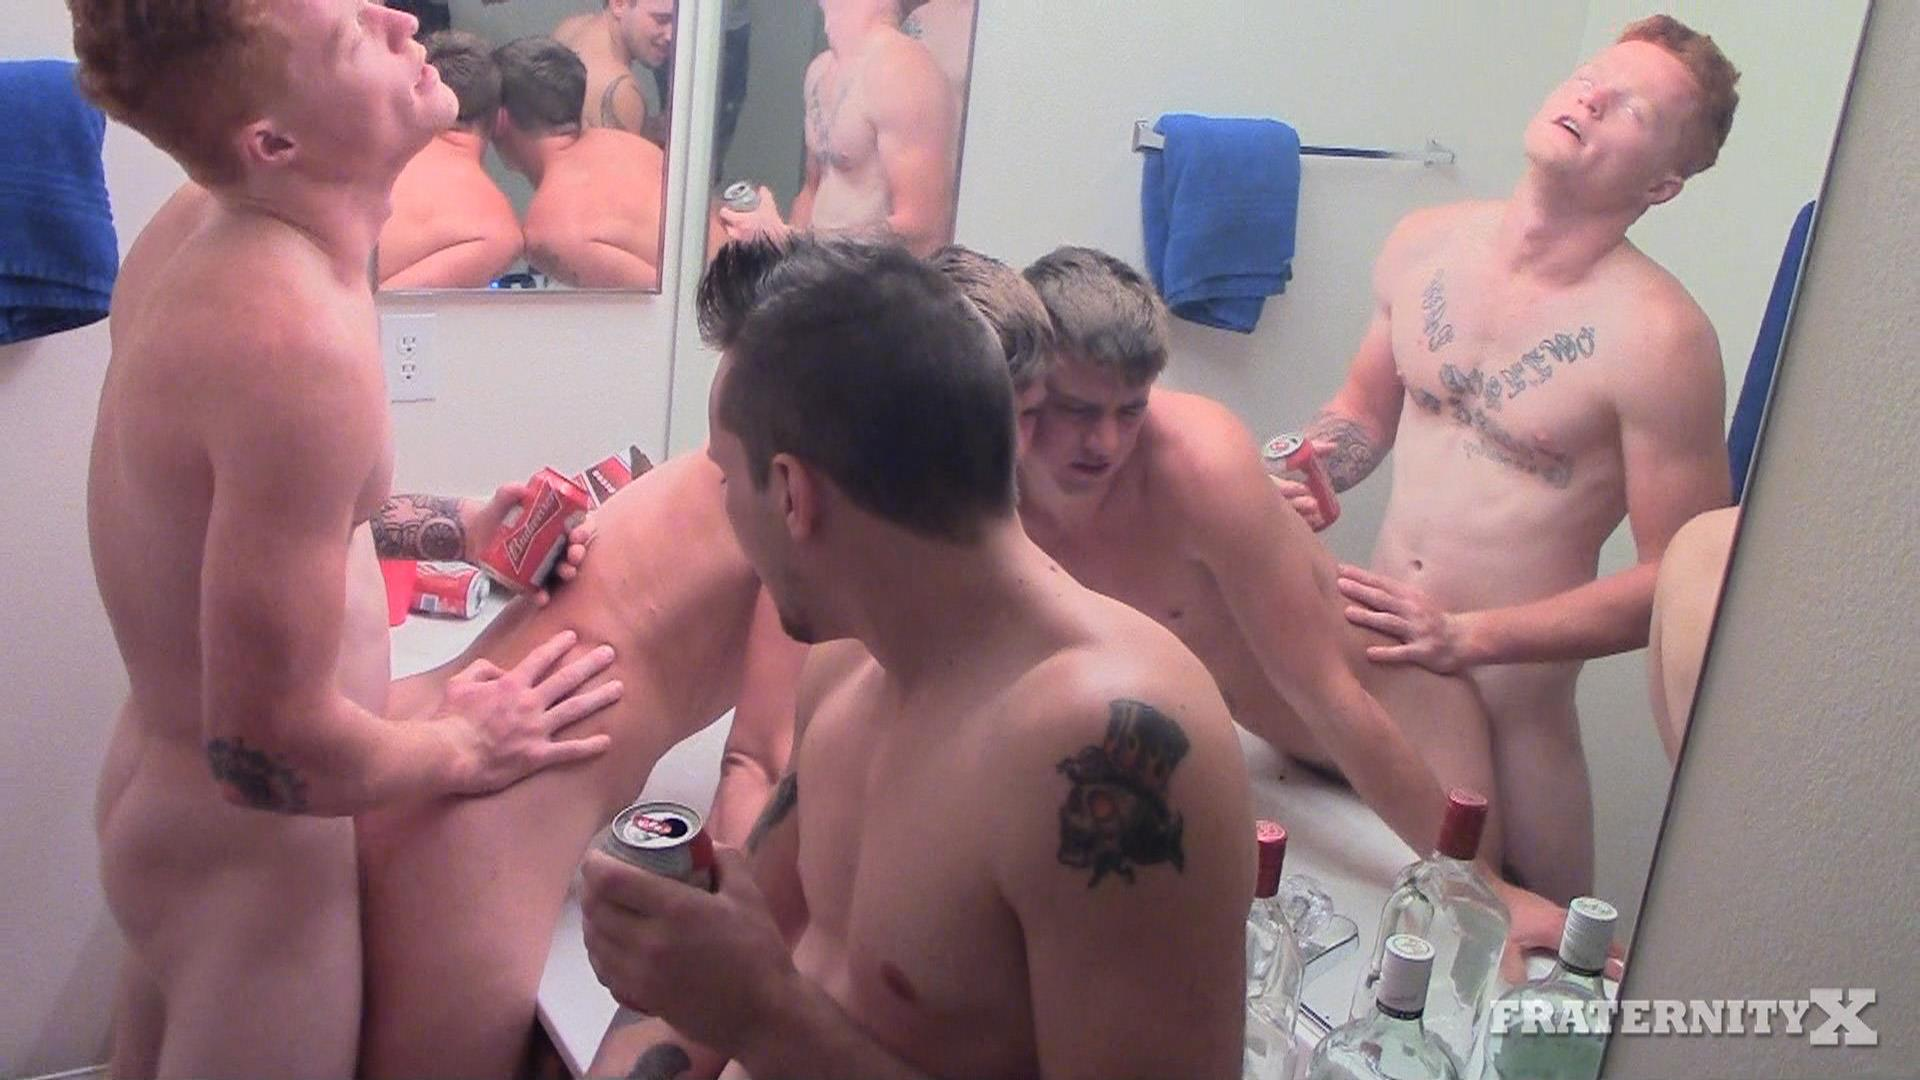 Fraternity-X-College-Guys-Bareback-Sex-Party-Amateur-Gay-Porn-03 College Frat Boy Gets Bareback Fucked In The Shower